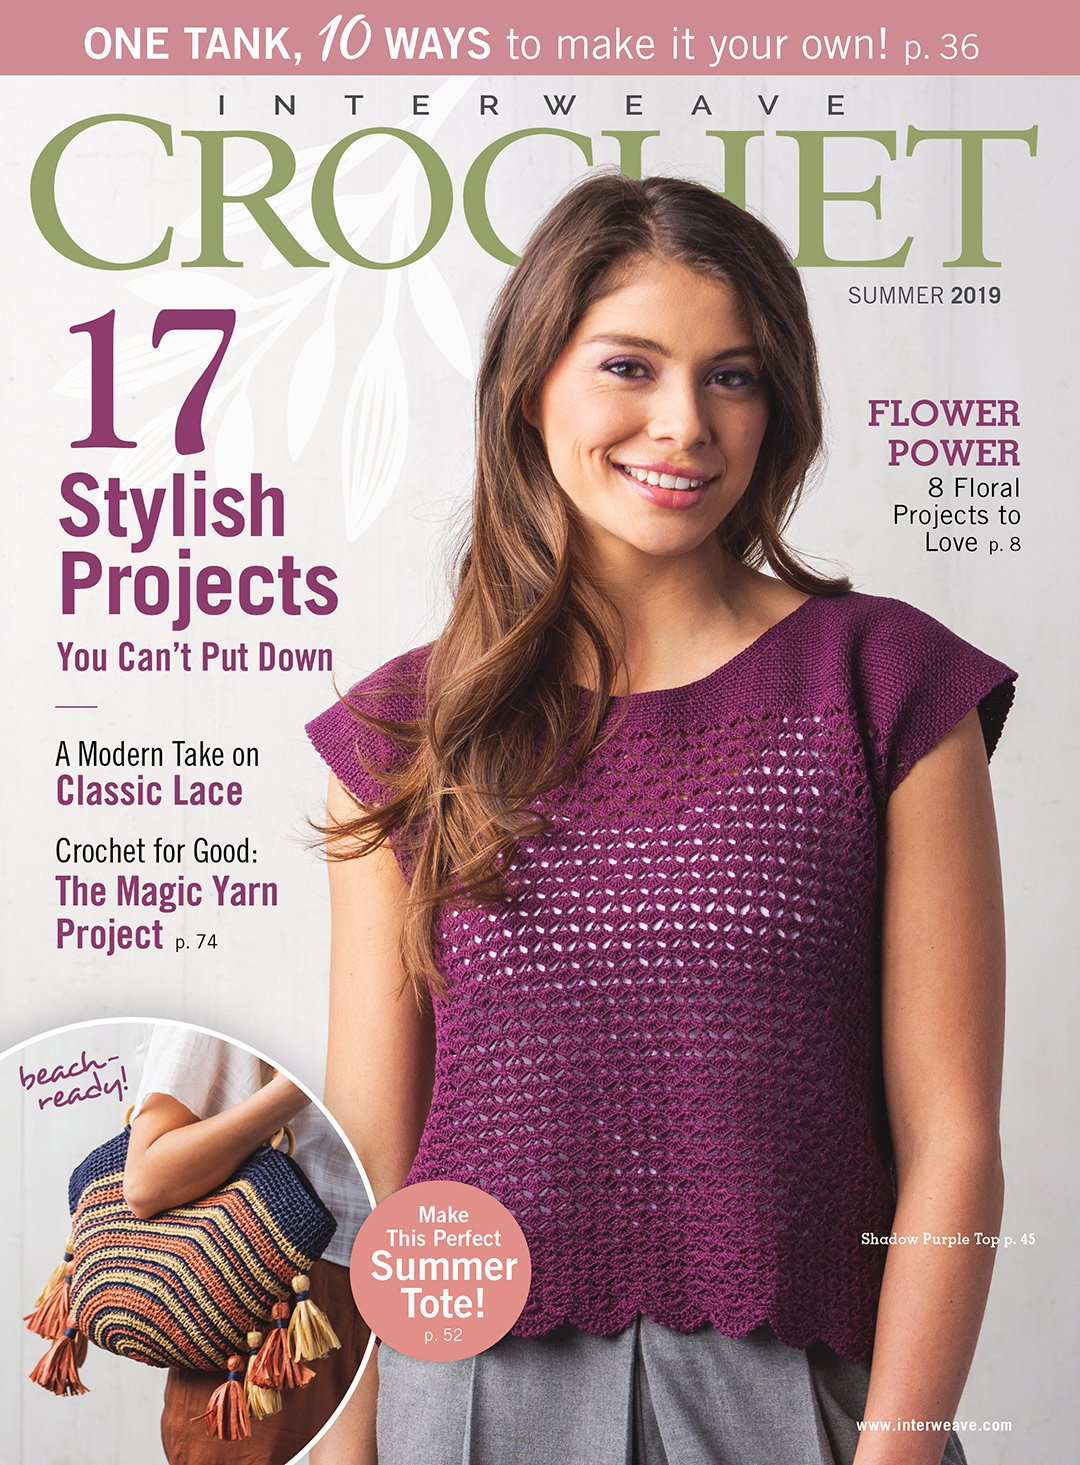 Interweave Crochet Summer